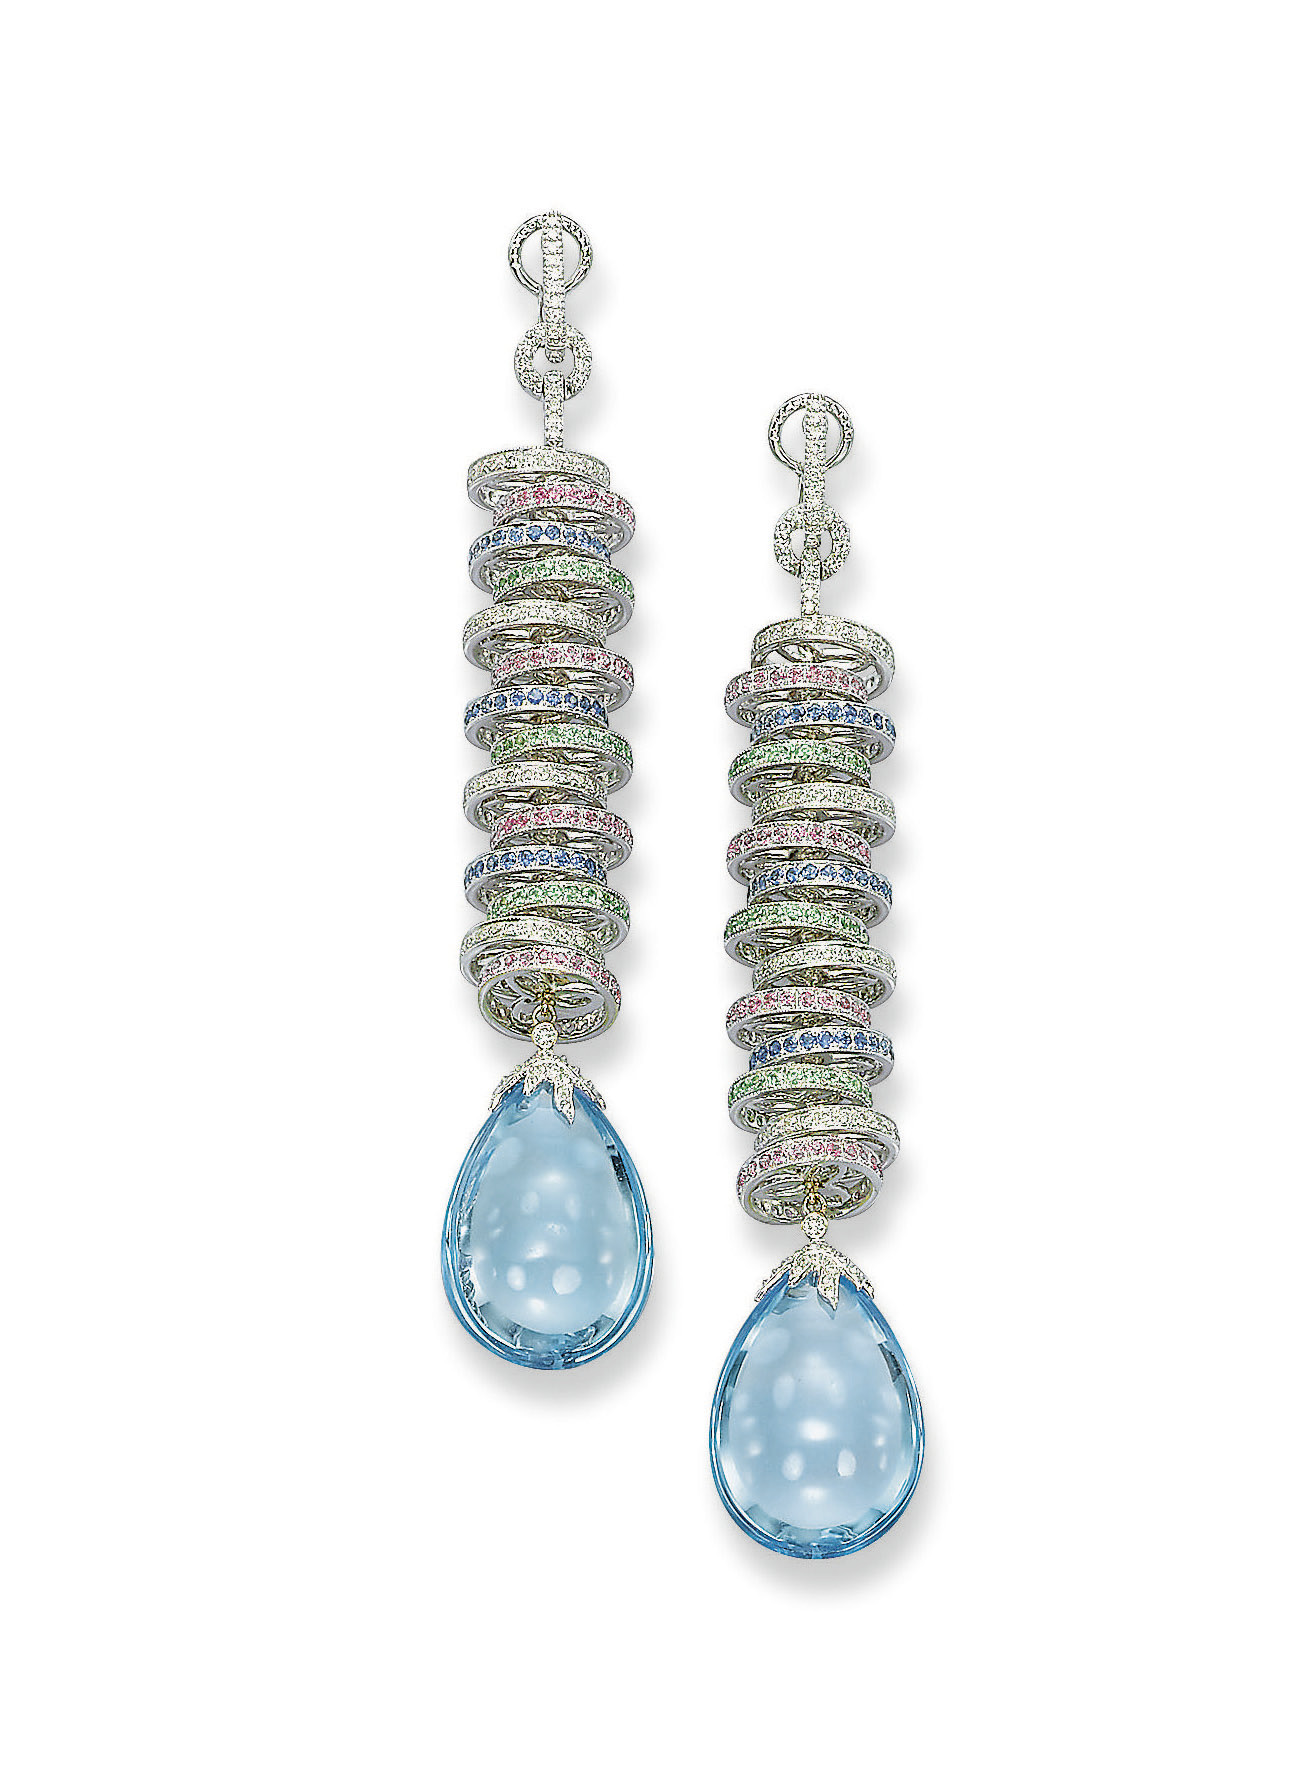 A PAIR OF BLUE TOPAZ, GEM-SET